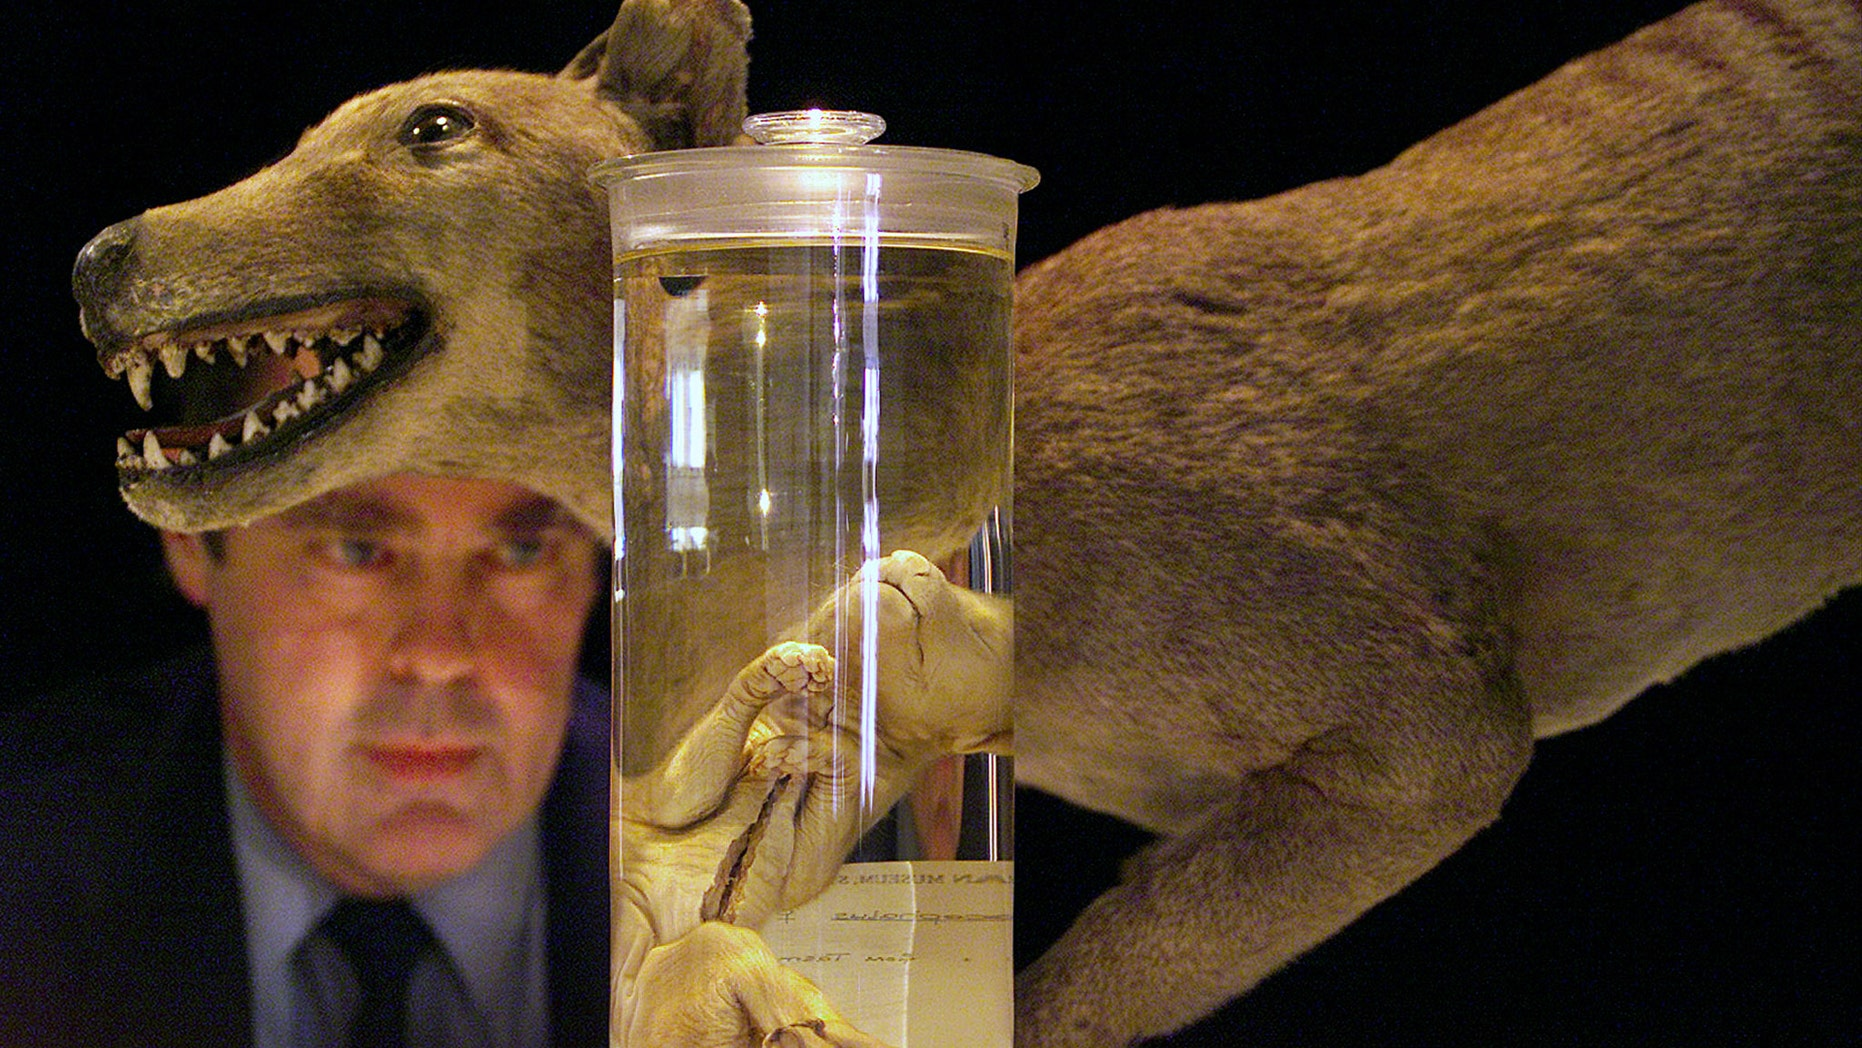 File photo - Don Colgan, Head of the Evolutionary Biology Unit at the Australian Museum, speaks under a model of a Tasmanian Tiger at a media conference in Sydney as seen in this May 4, 2000 file photo regarding the quality DNA extracted from the heart, liver, muscle and bone marrow tissue samples of a 134 year-old Tiger specimen (R) preserved in alcohol. The last known Tasmanian Tiger died in 1936 after it was hunted down and wiped out in only 100 years of human settlement. (Reuters)